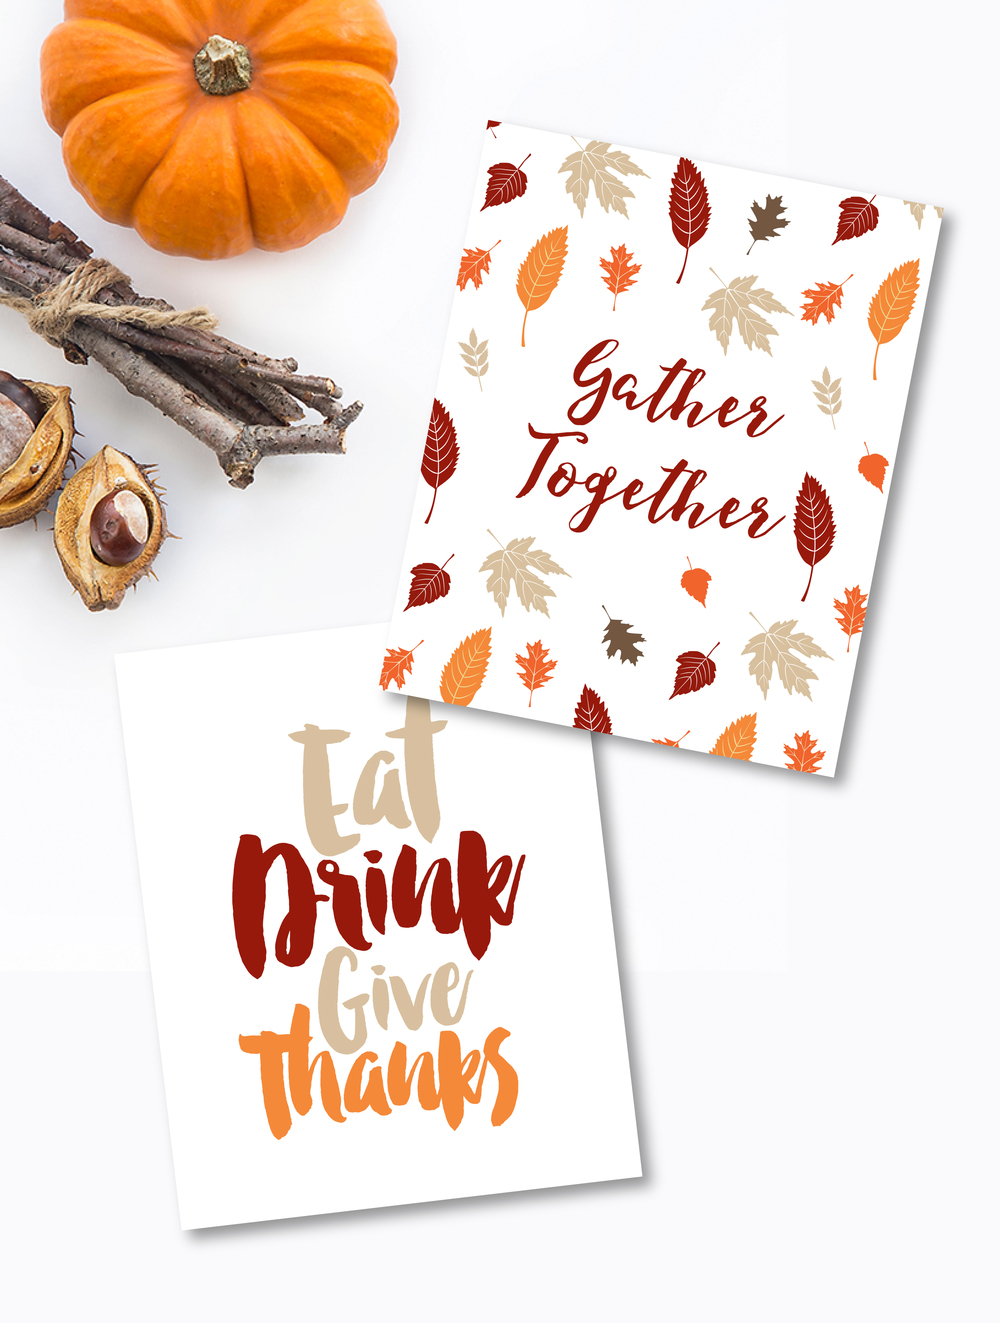 Free Thanksgiving Printables by MKKM Designs